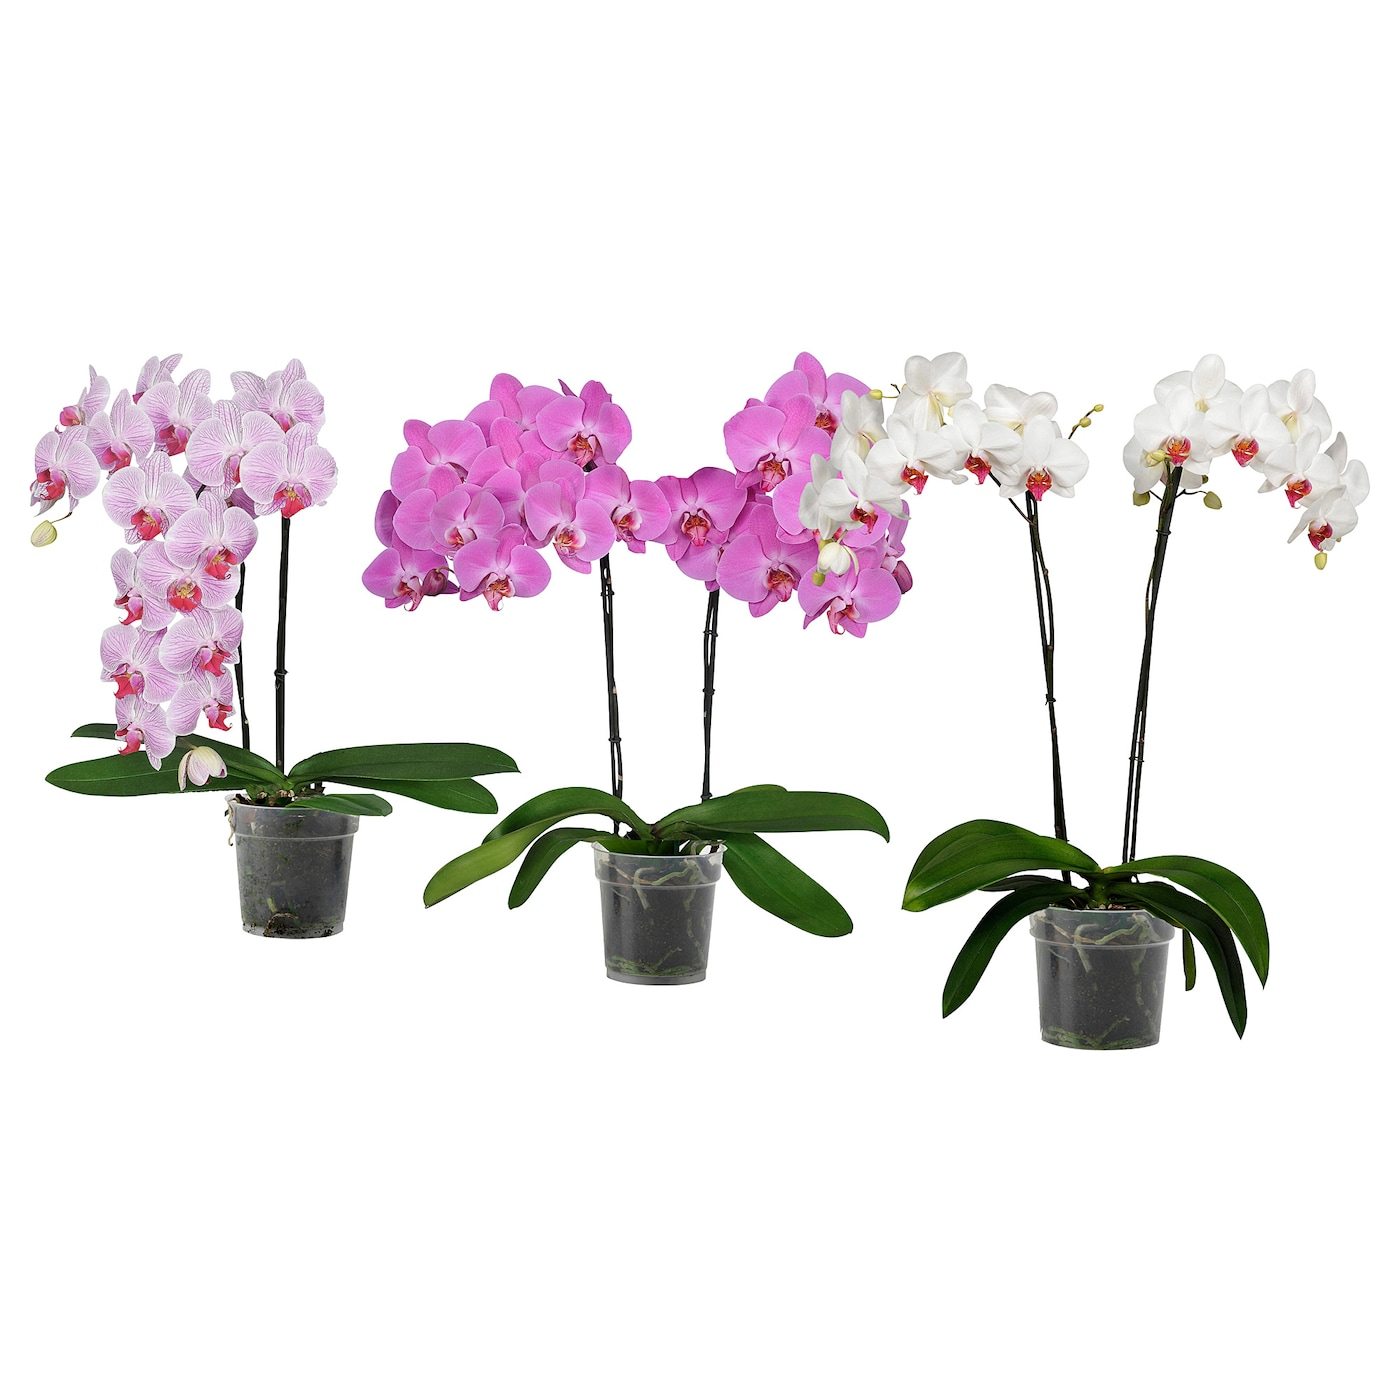 Phalaenopsis Potted Plant Orchid 2 Stems Assorted